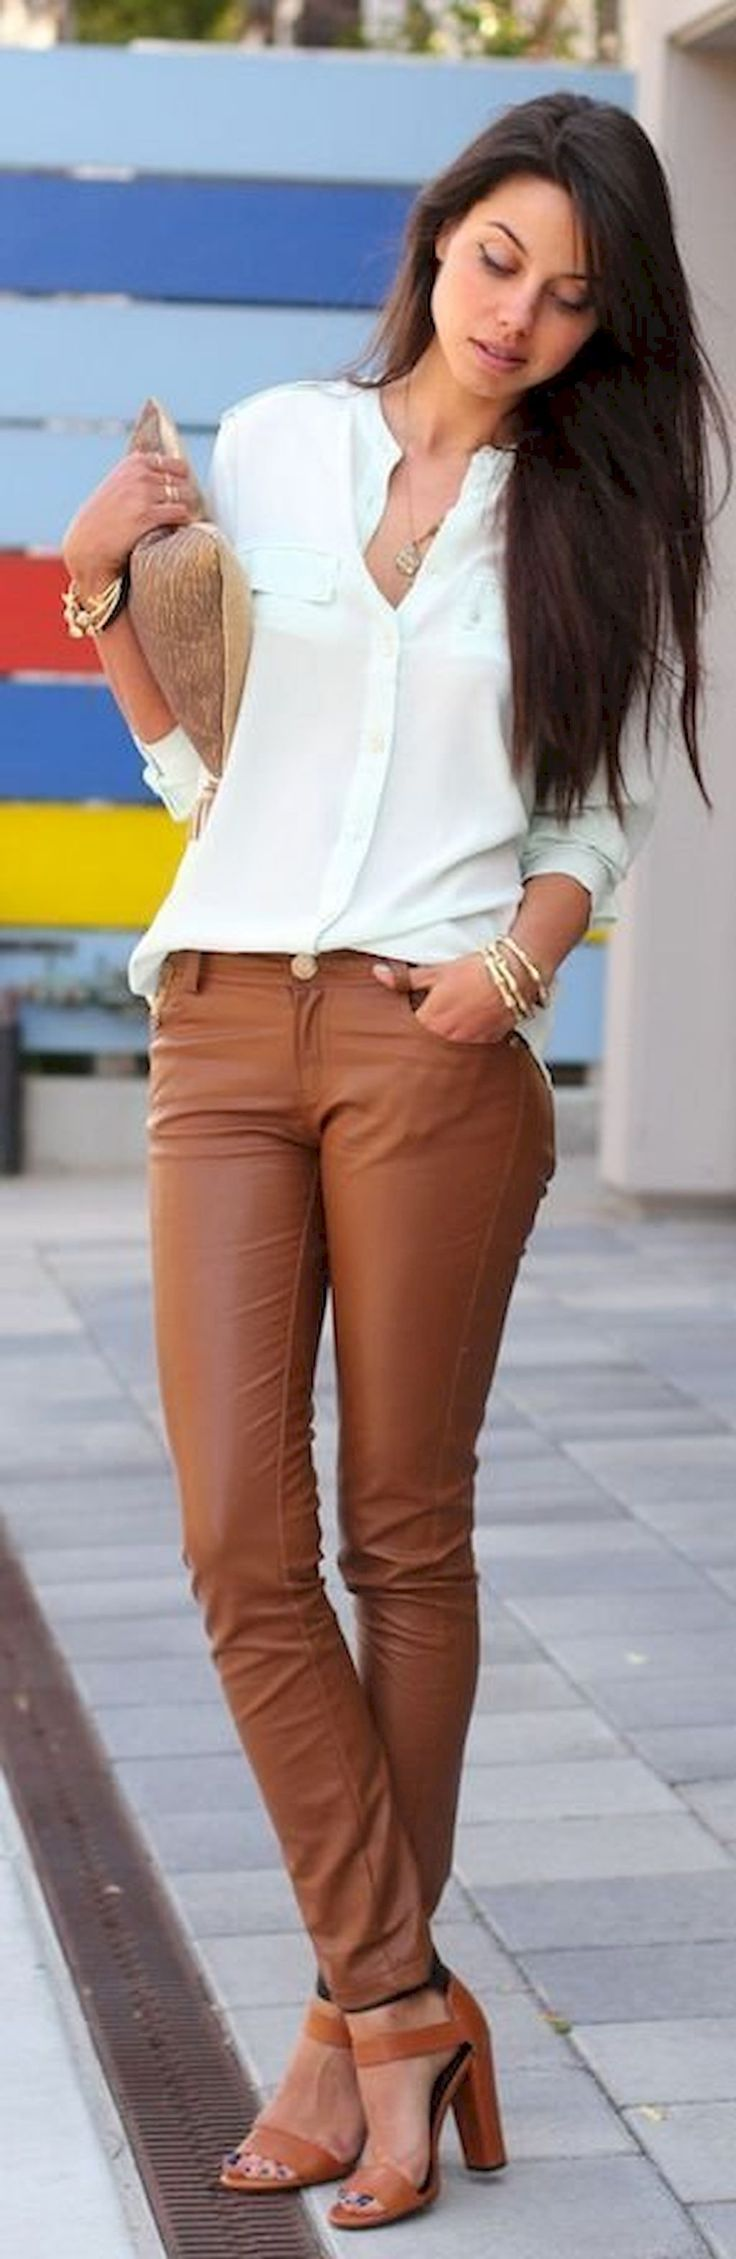 Cool 75+ Casual Fall Outfits Ideas for Women https://bitecloth.com/2017/12/22/75-casual-fall-outfits-ideas-women/